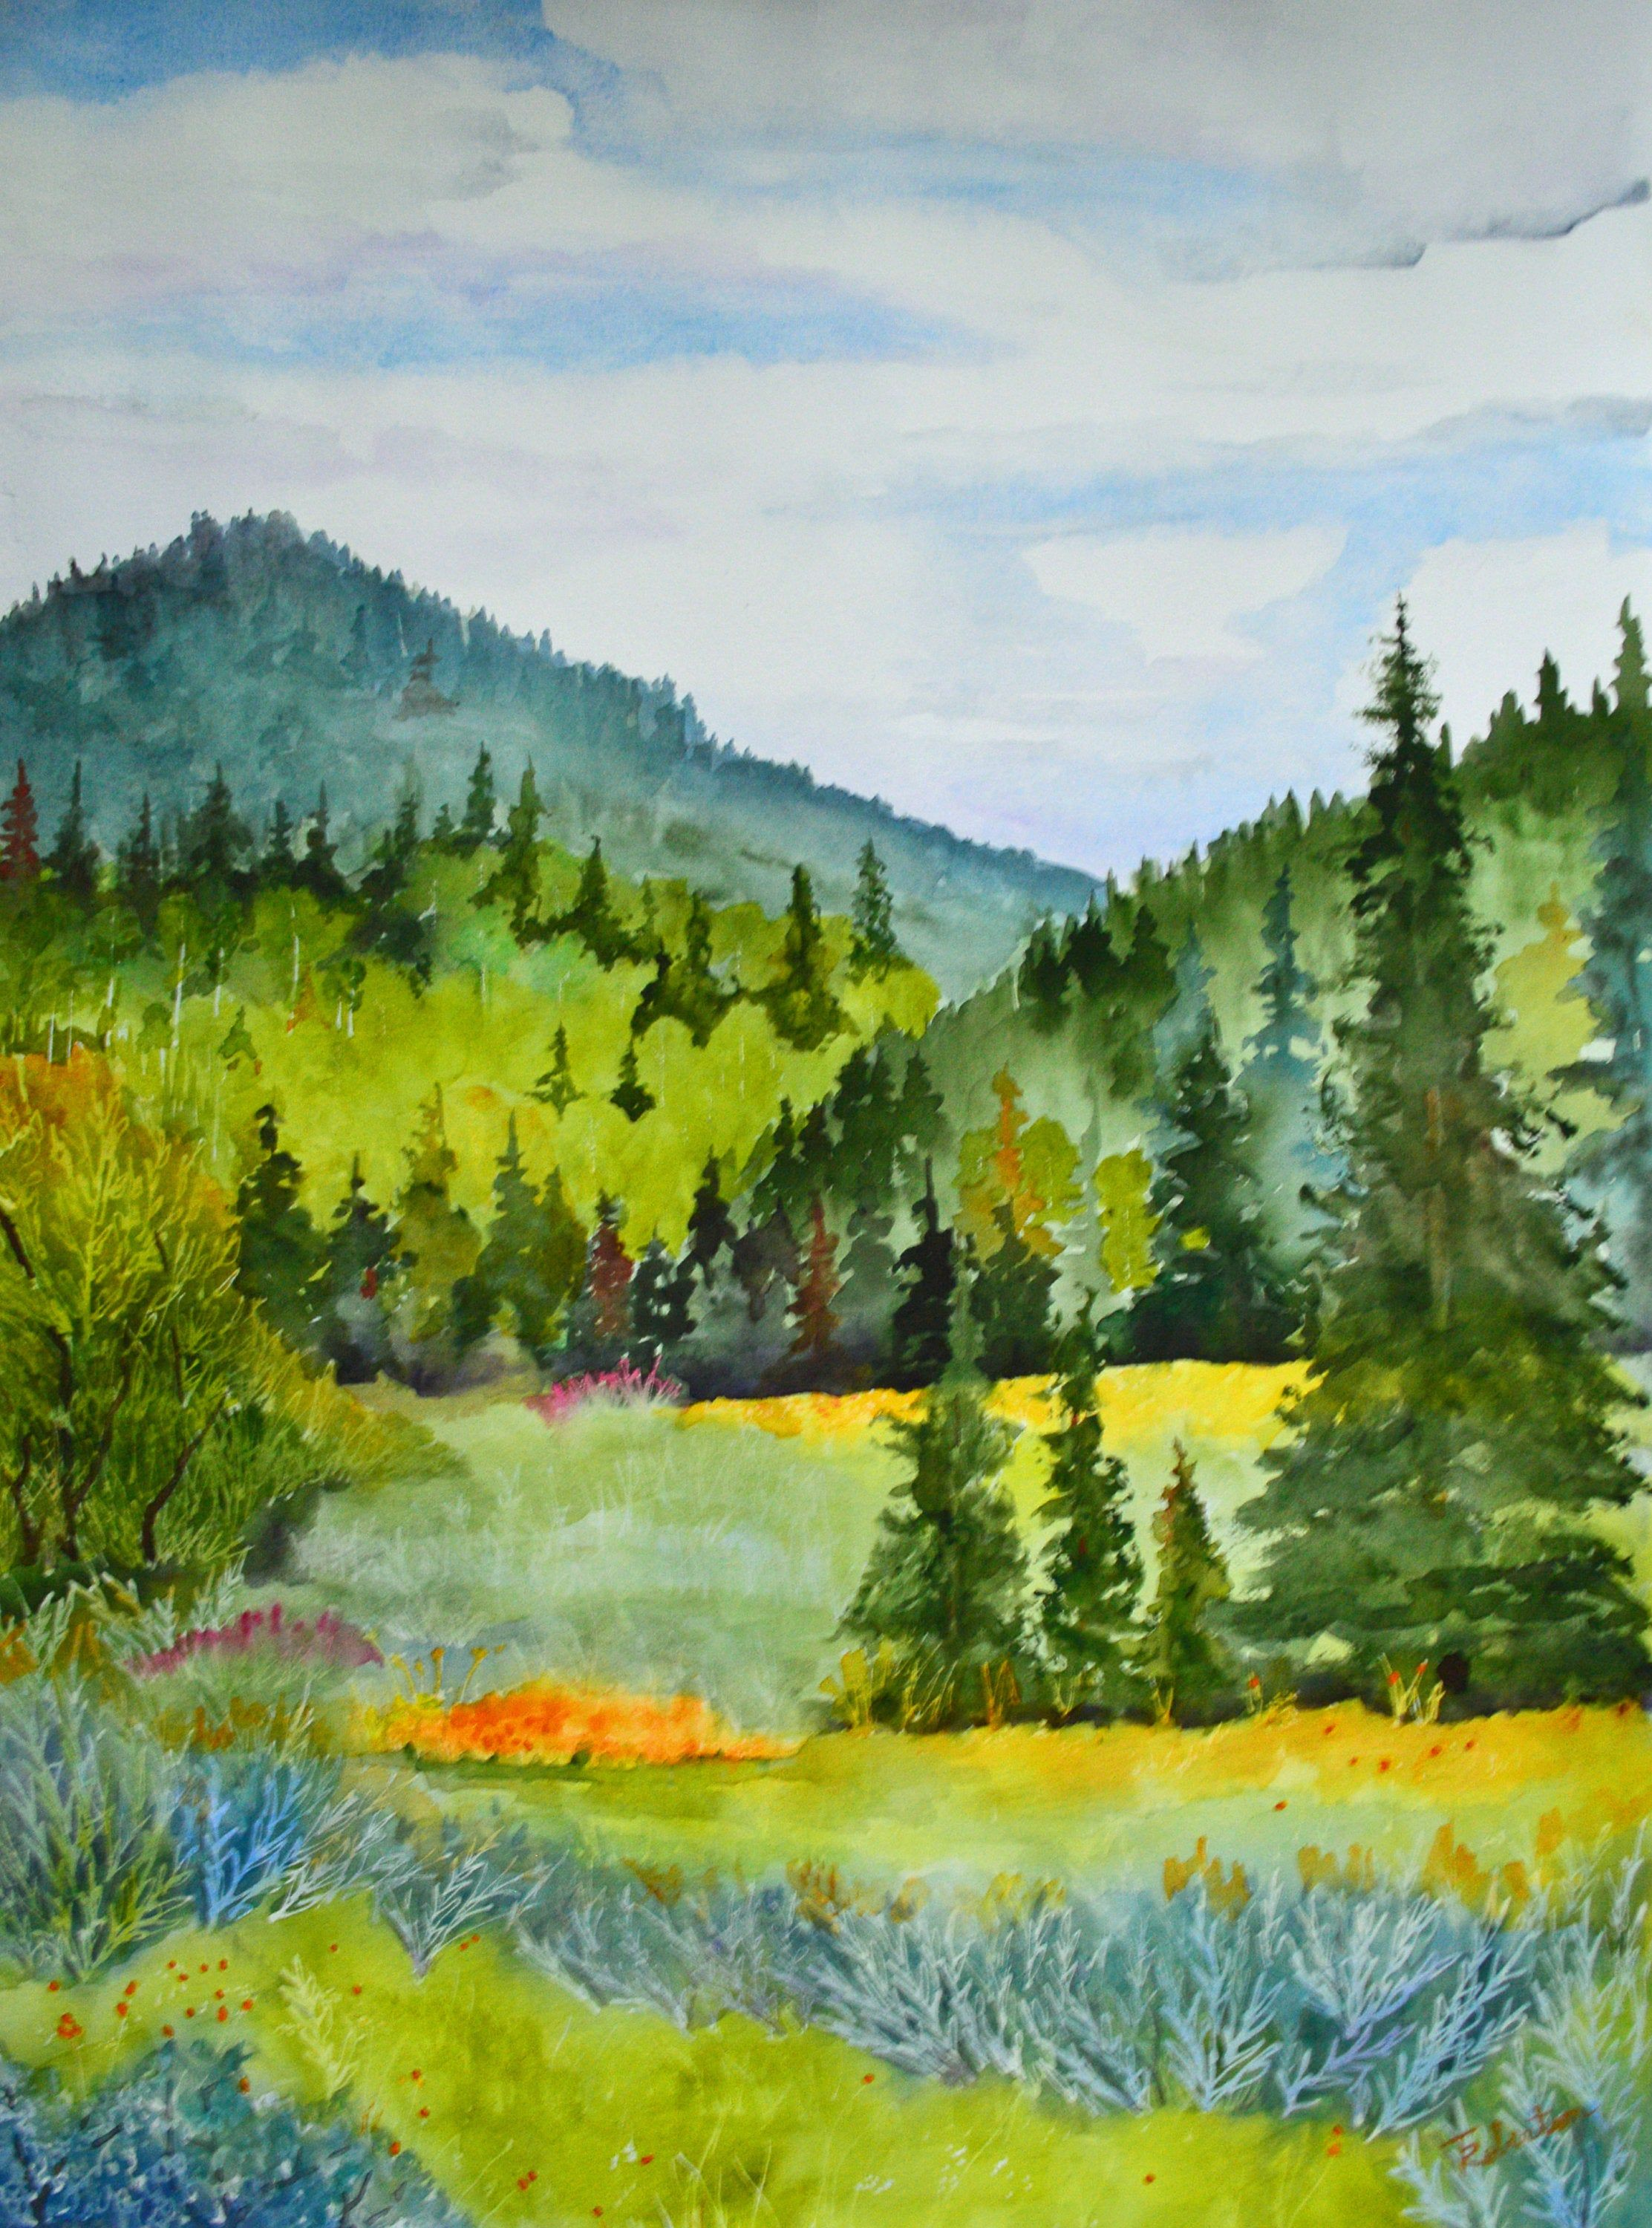 Colorado Mountain Painting Watercolor Painting Original In Routt National Forest Meadow Landscape Watercolor Fine Art Home Decor Forest Painting Watercolor Landscape Mountain Paintings